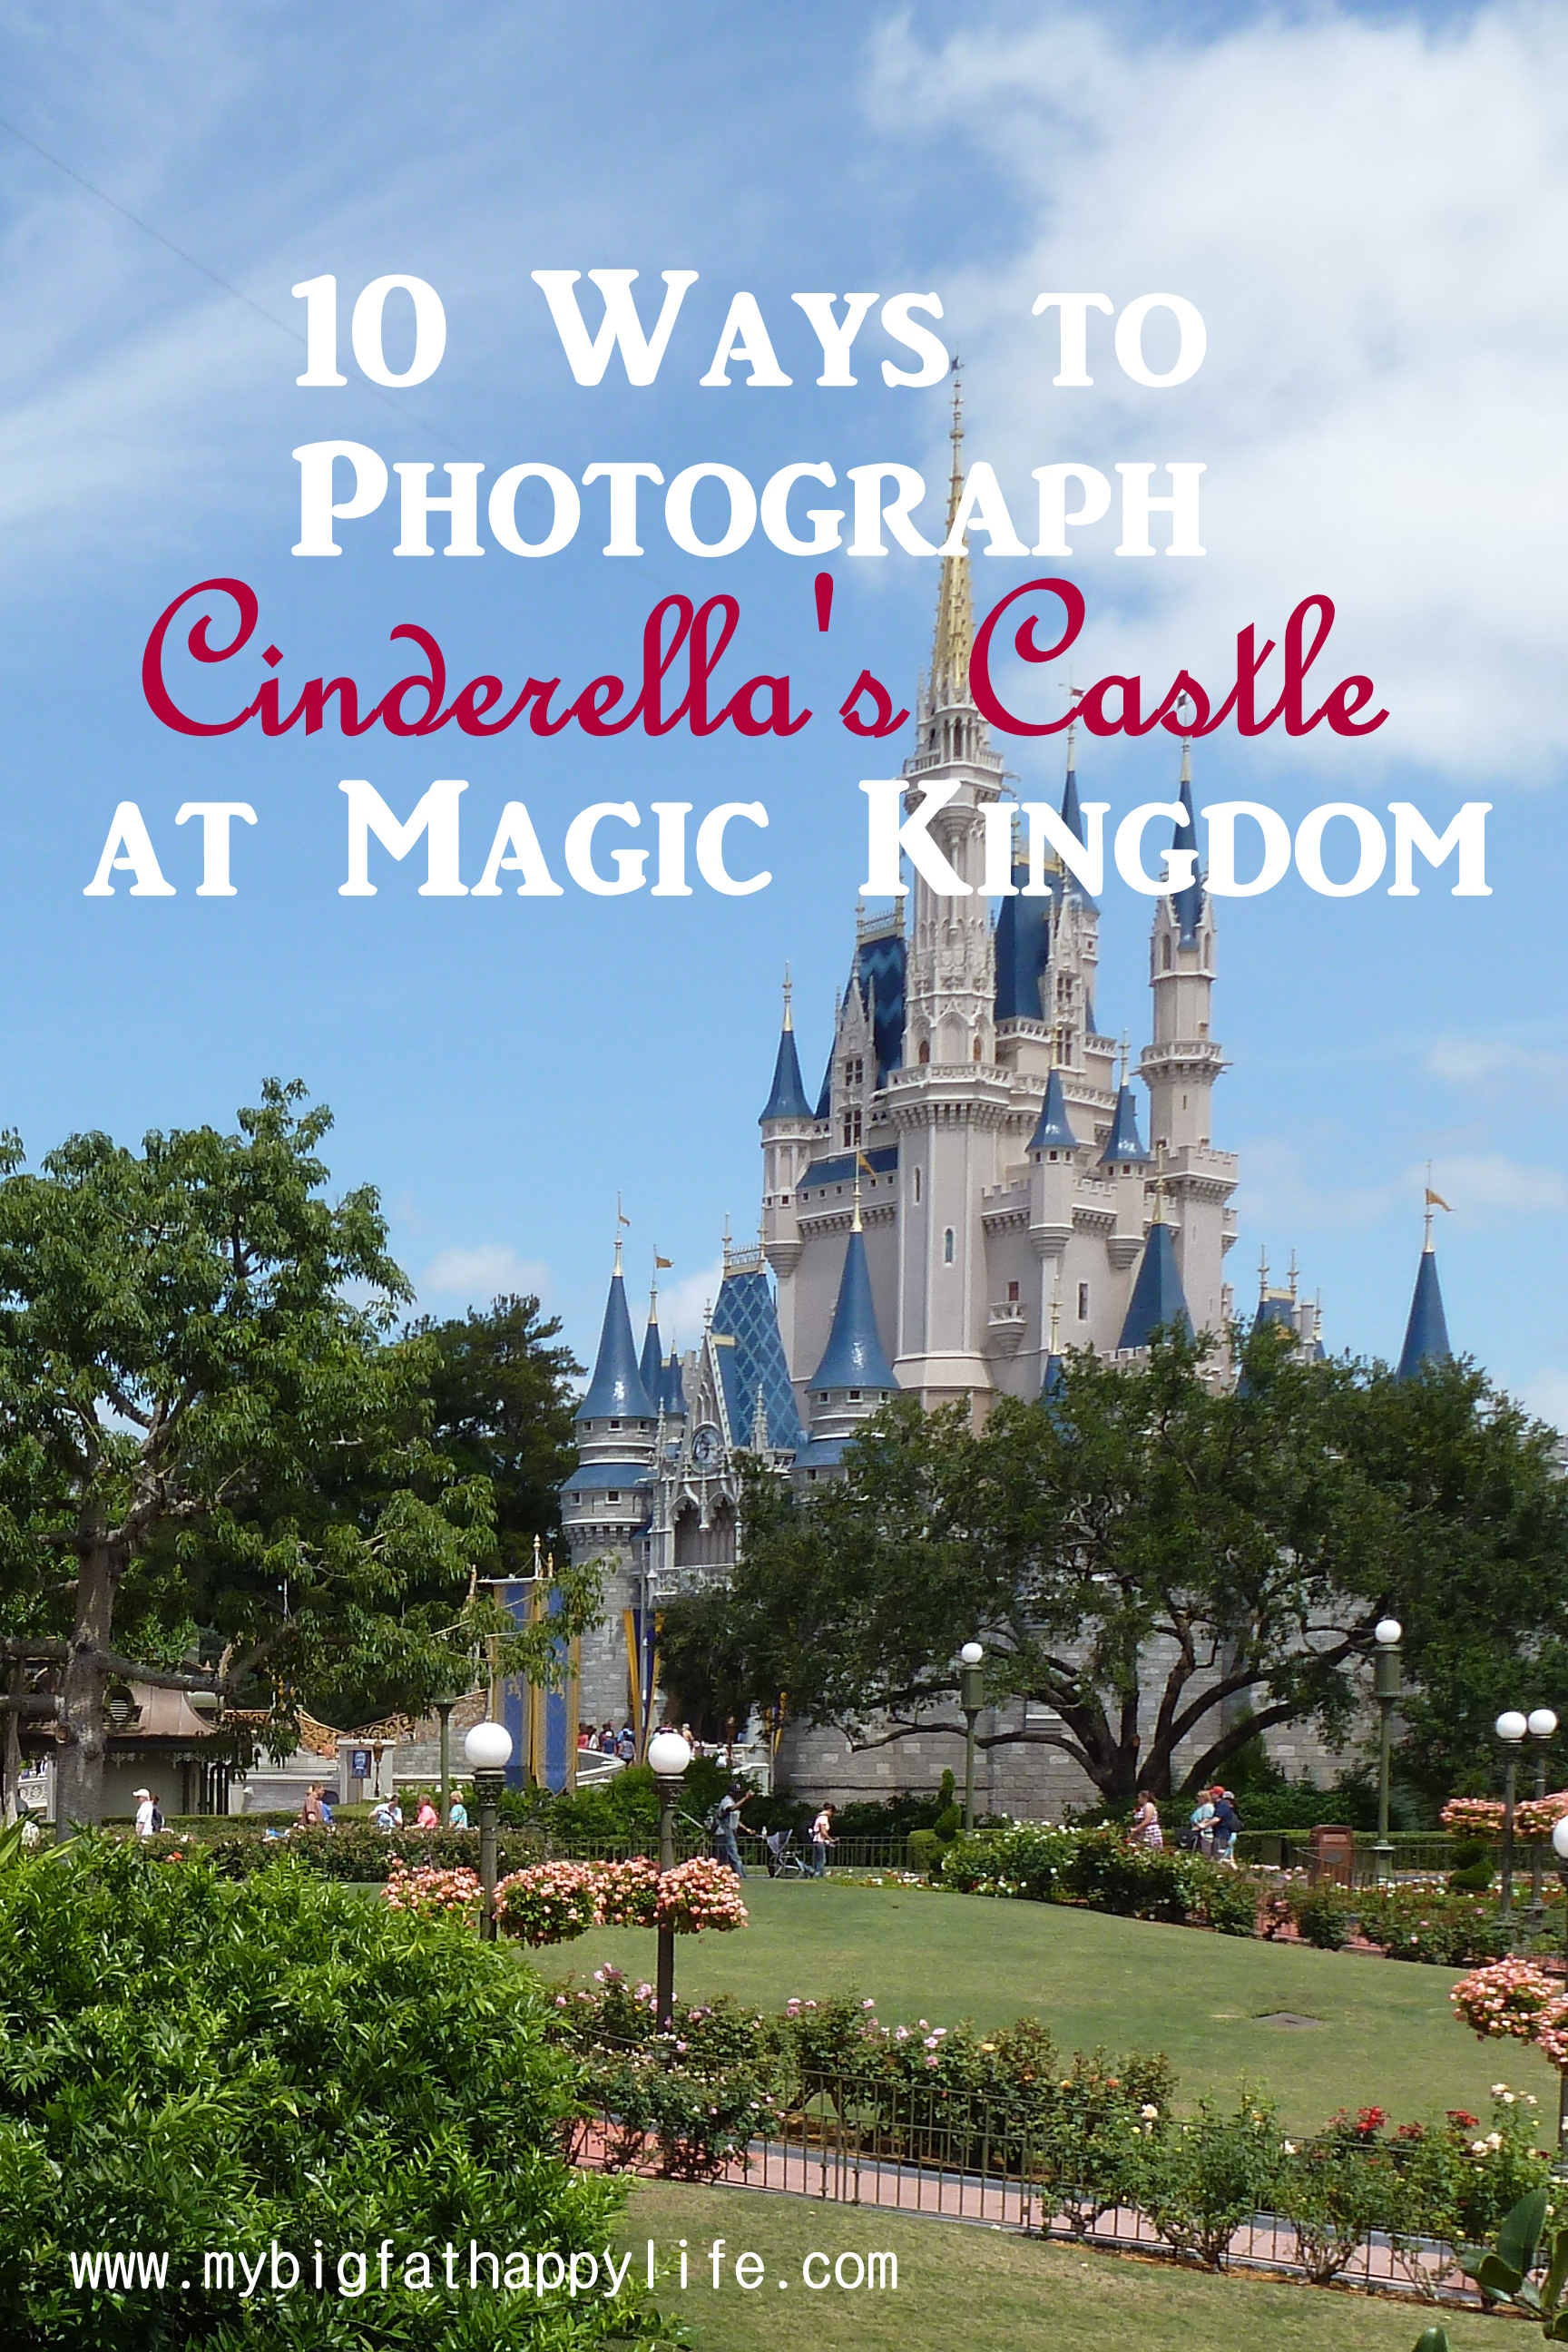 Cinderella's Castle Photo Ideas at Magic Kingdom, Disney World | mybigfathappylife.com